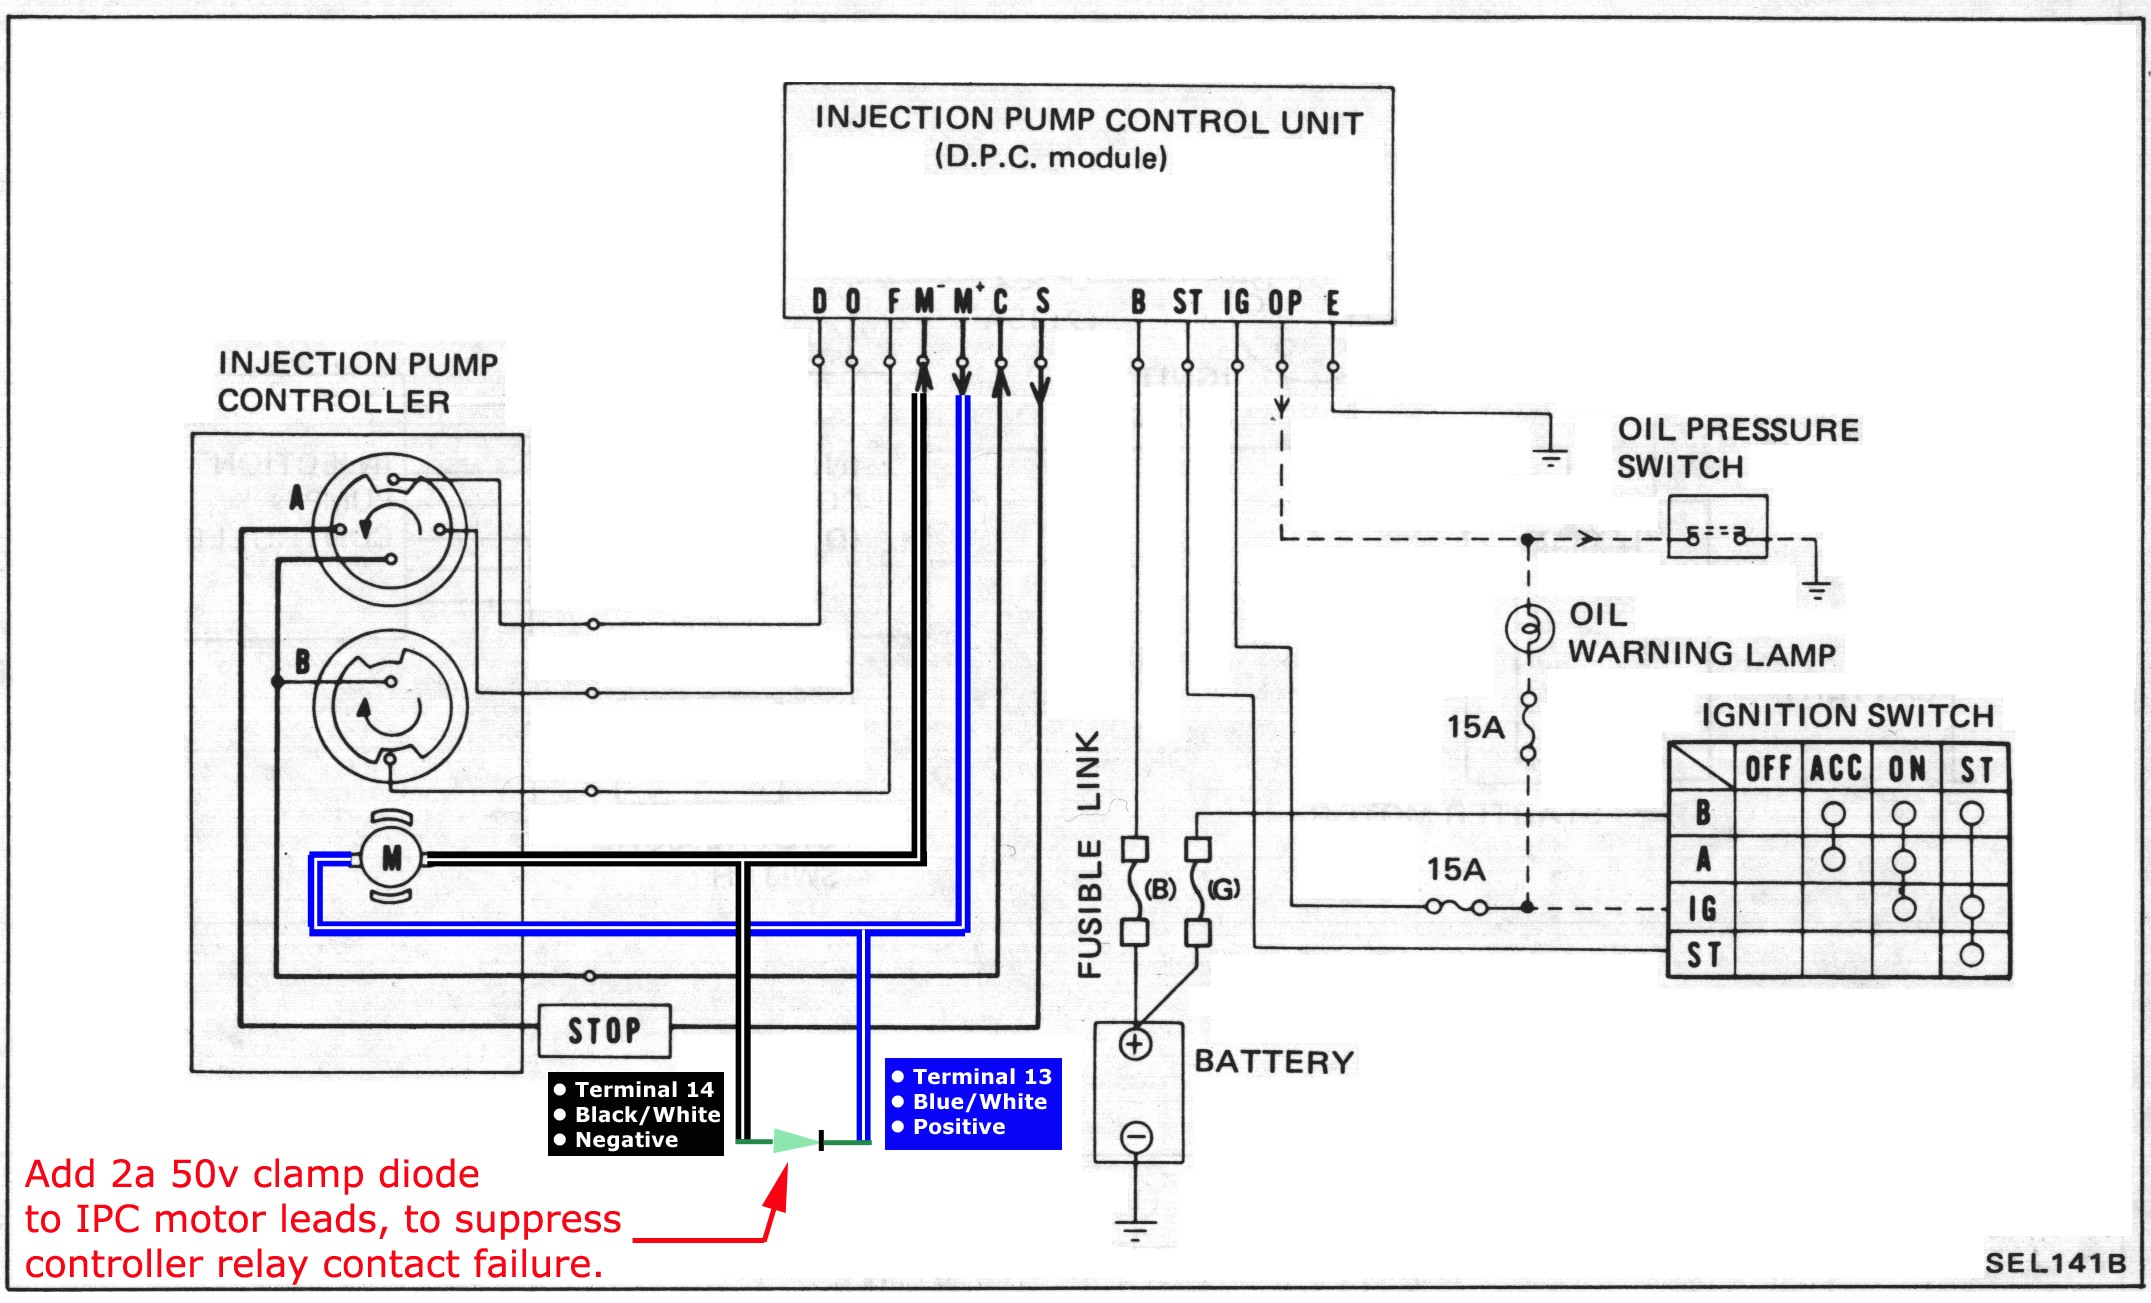 Dpc Module  U0026 Injection Pump Controller   - Page 2